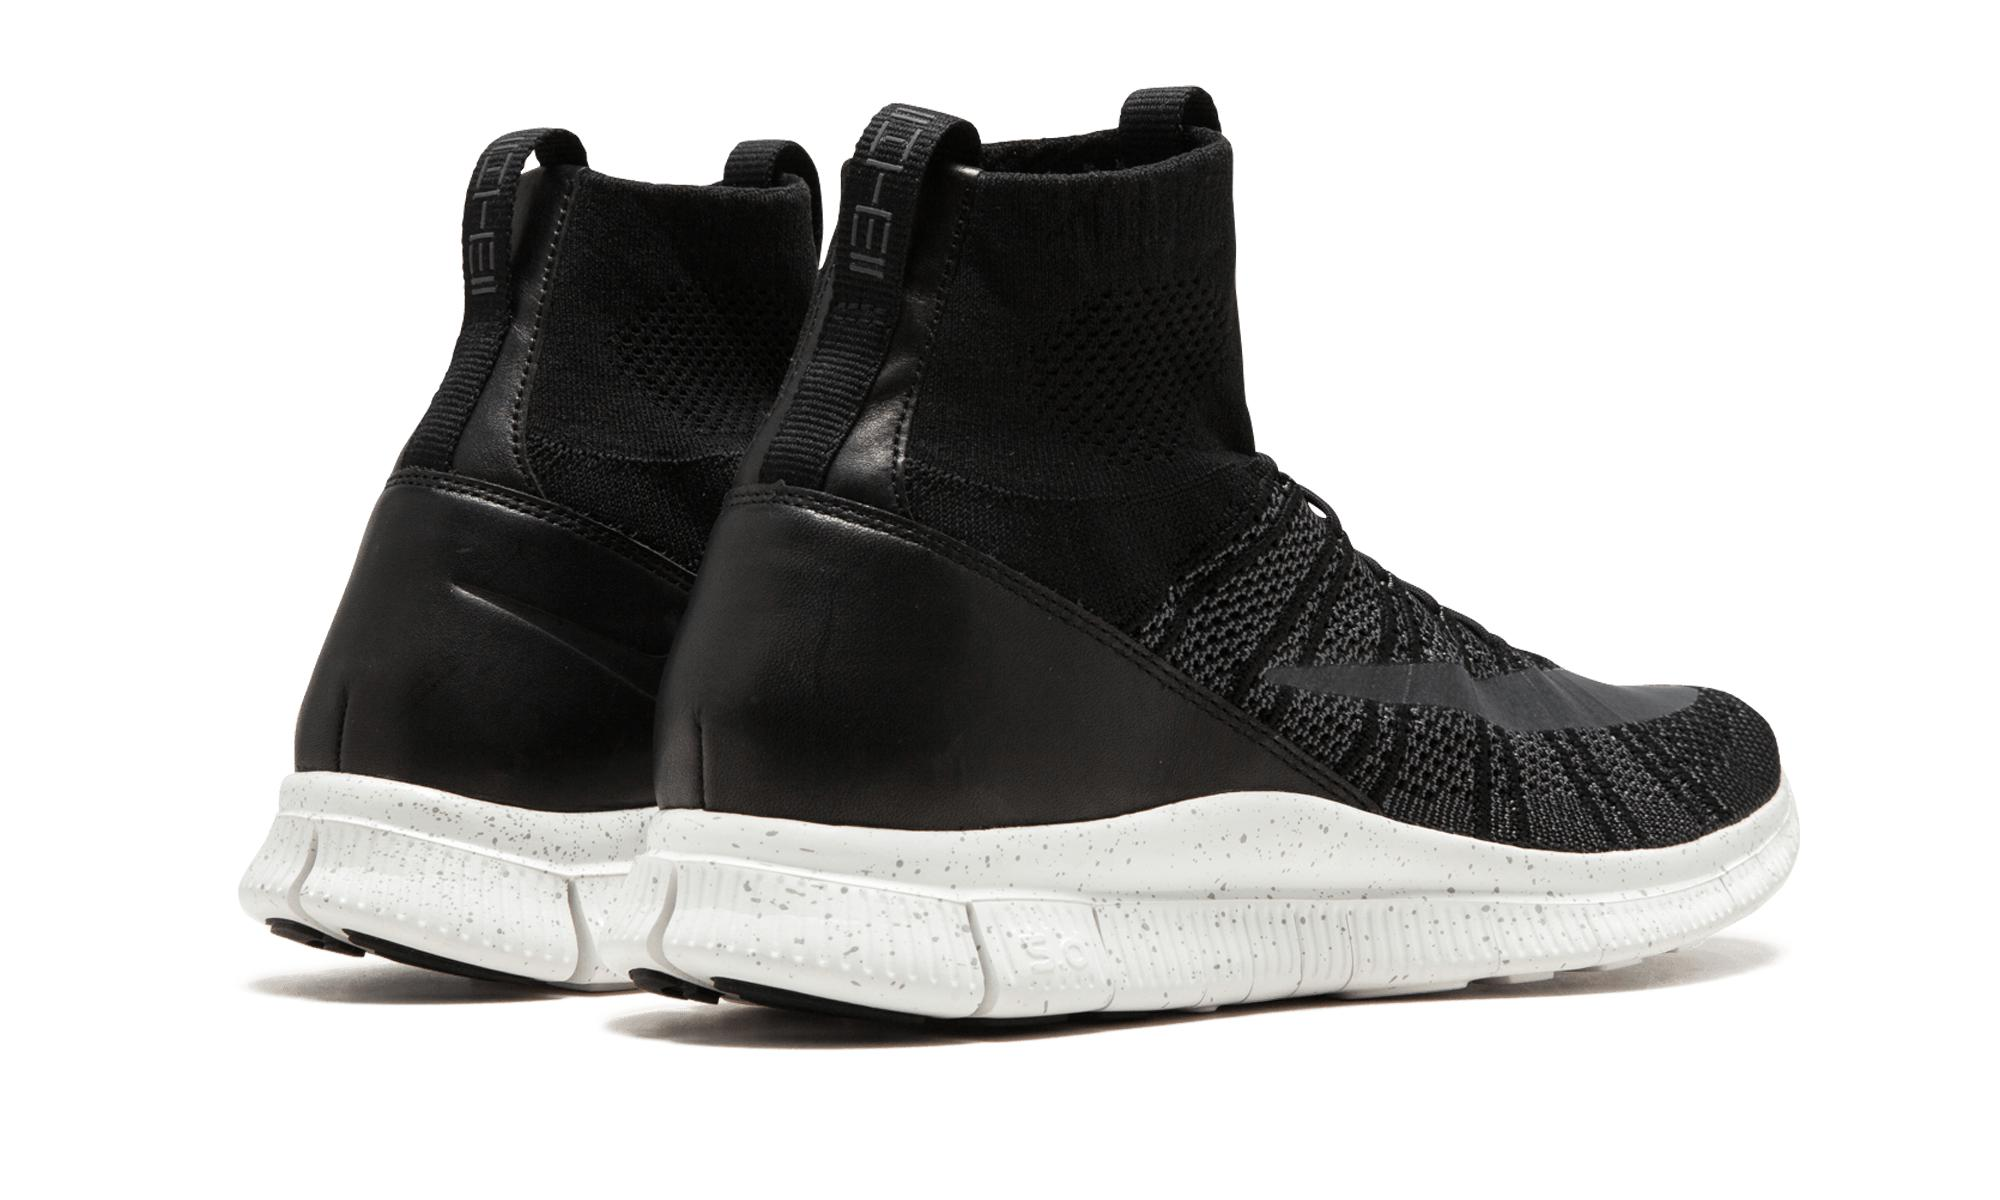 new style c81be 2b58c Nike Black Htm Free Mercurial Superfly X for men